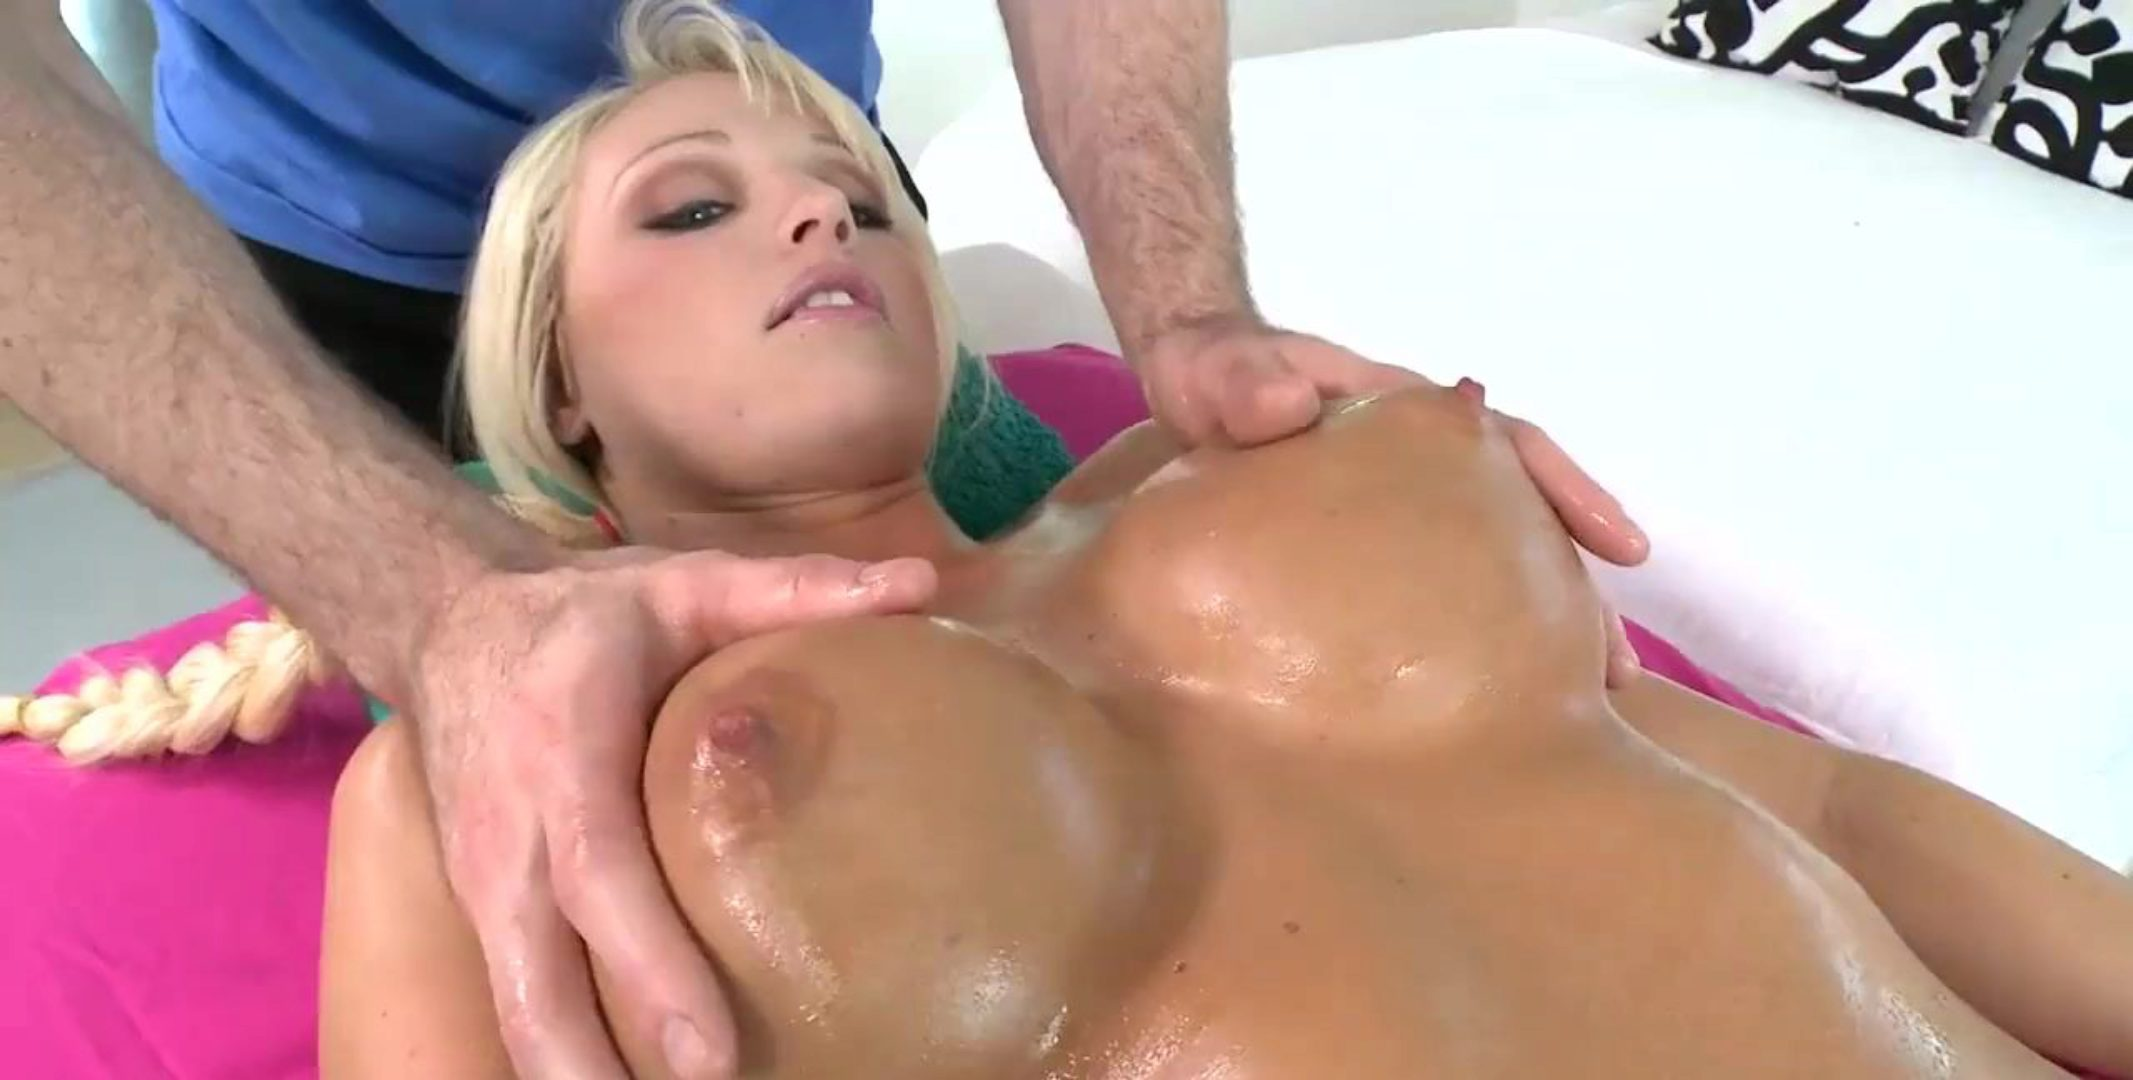 Perfect Blonde Sucks Dick on Massage Table